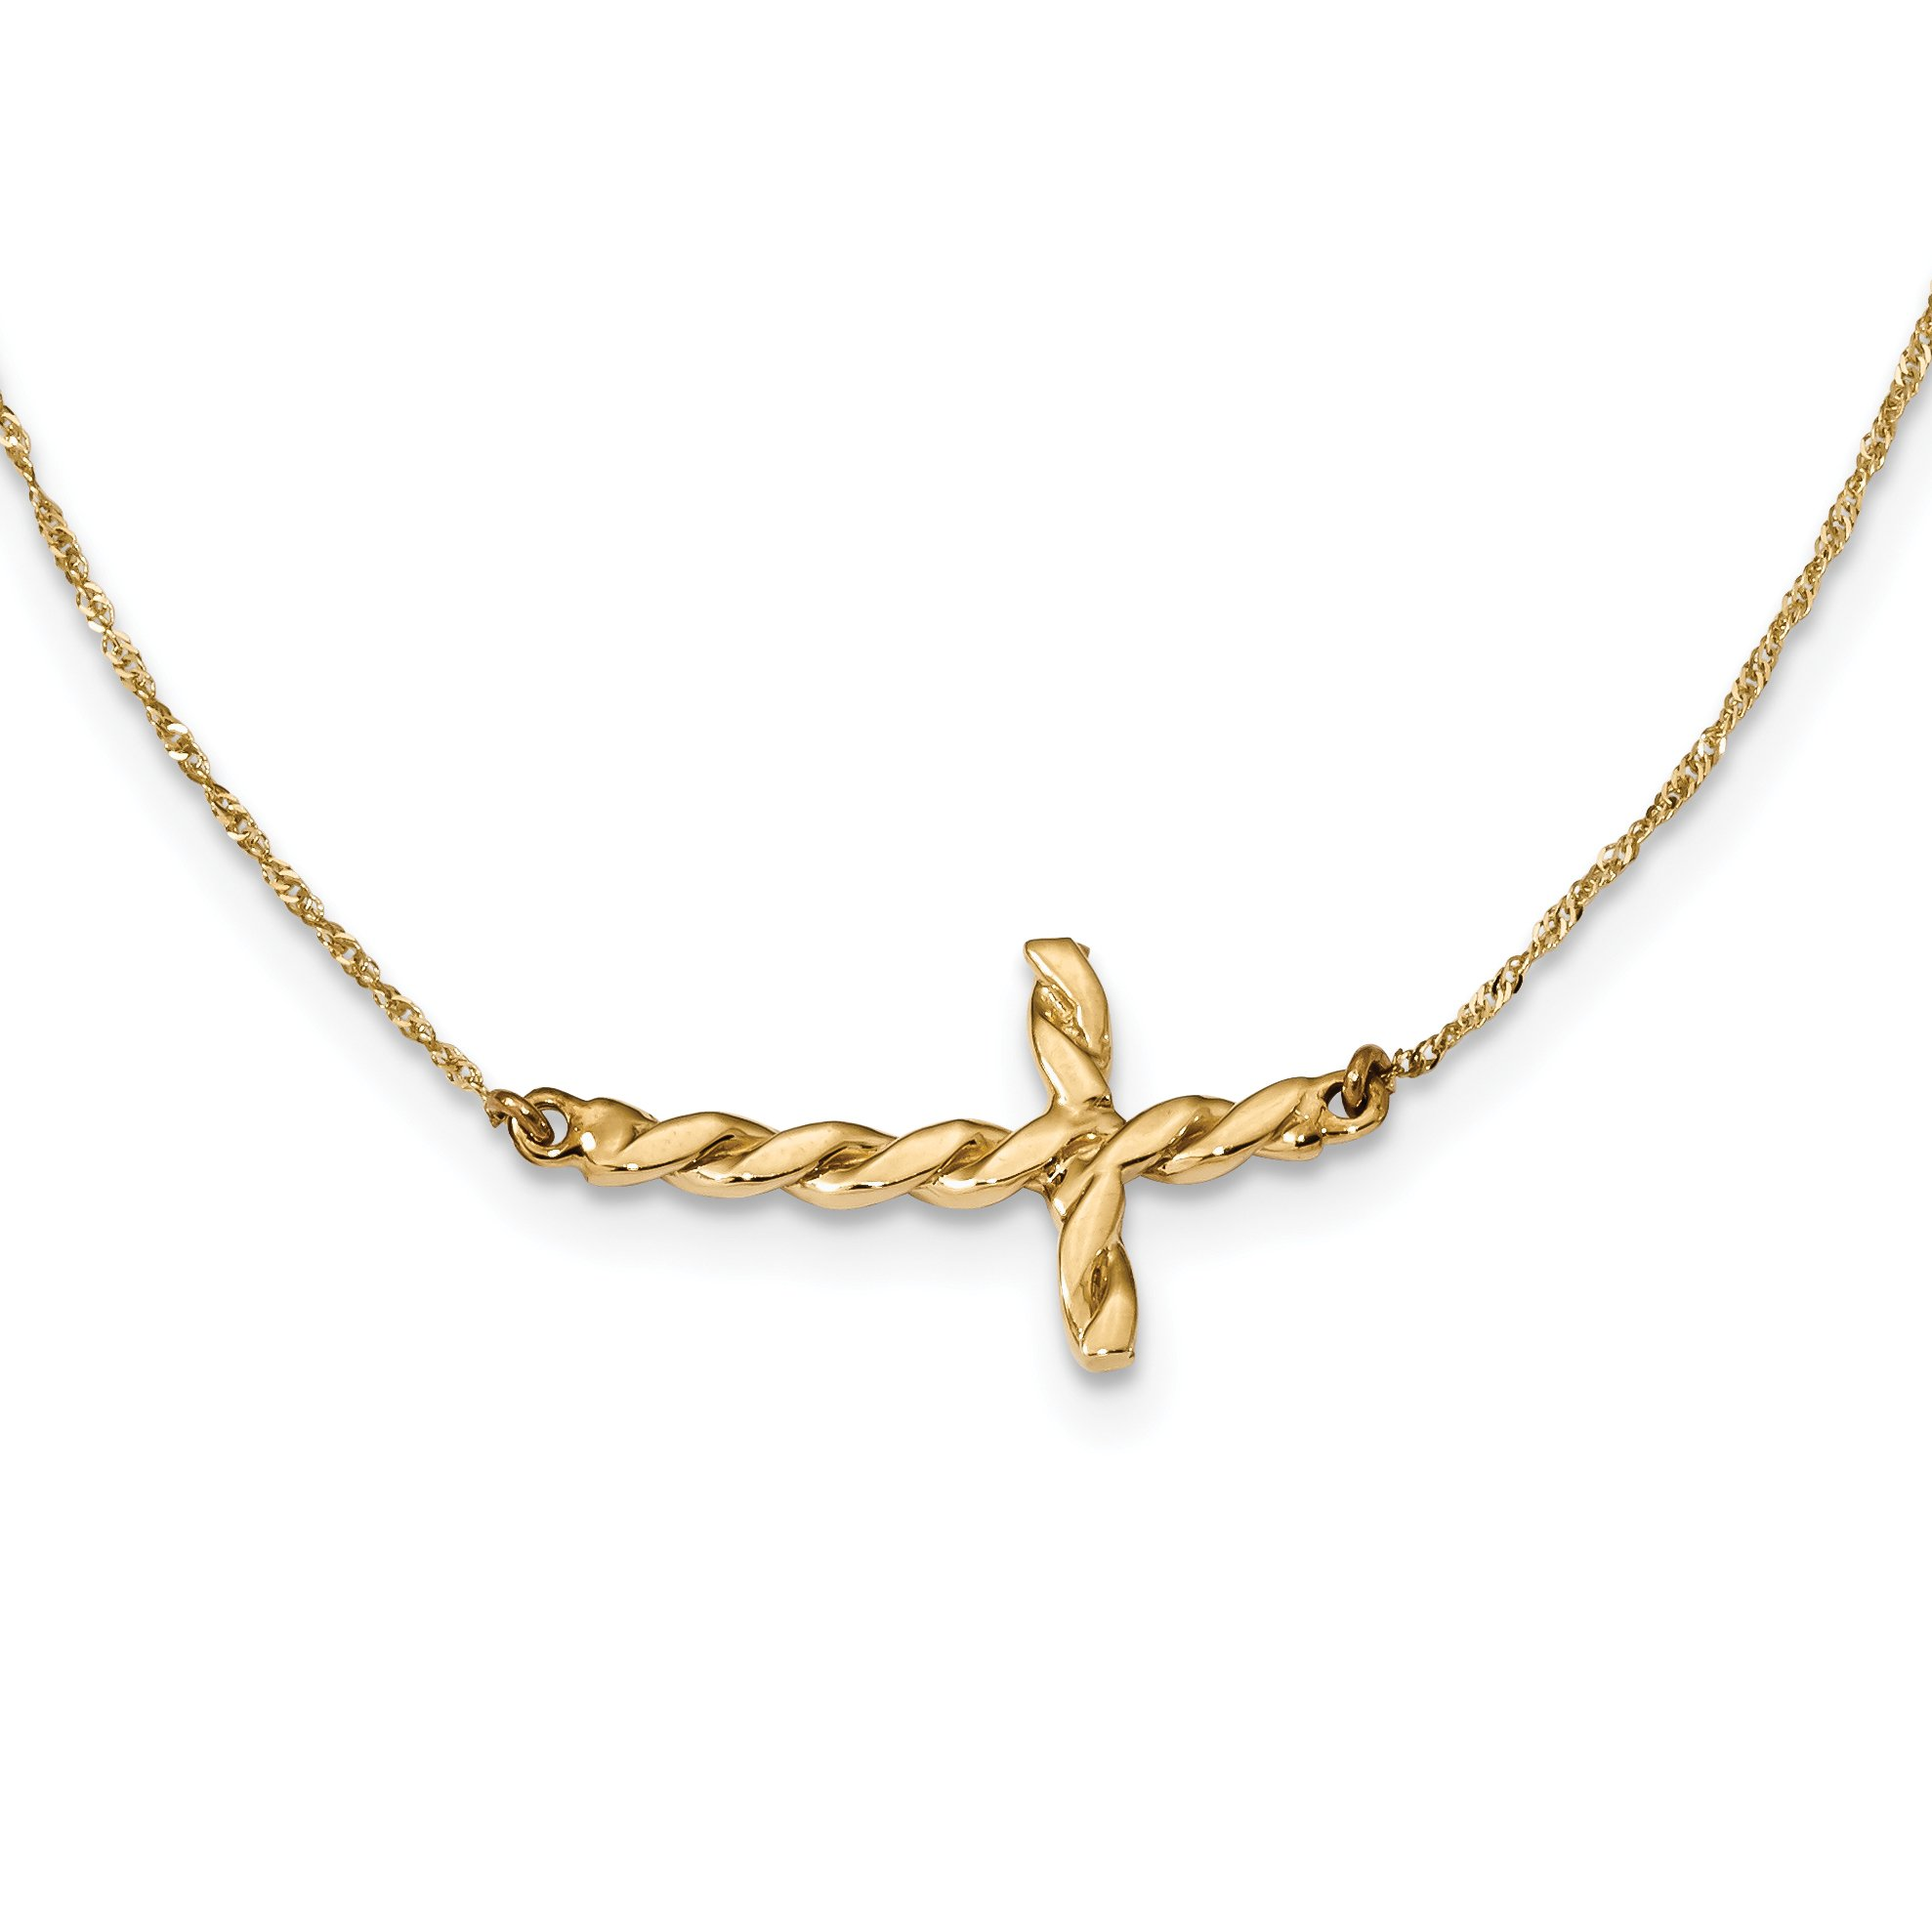 ICE CARATS 14k Yellow Gold Twisted Sideways Cross Religious 17 Inch Chain Necklace Fancy Crucifix Fine Jewelry Gift For Women Heart